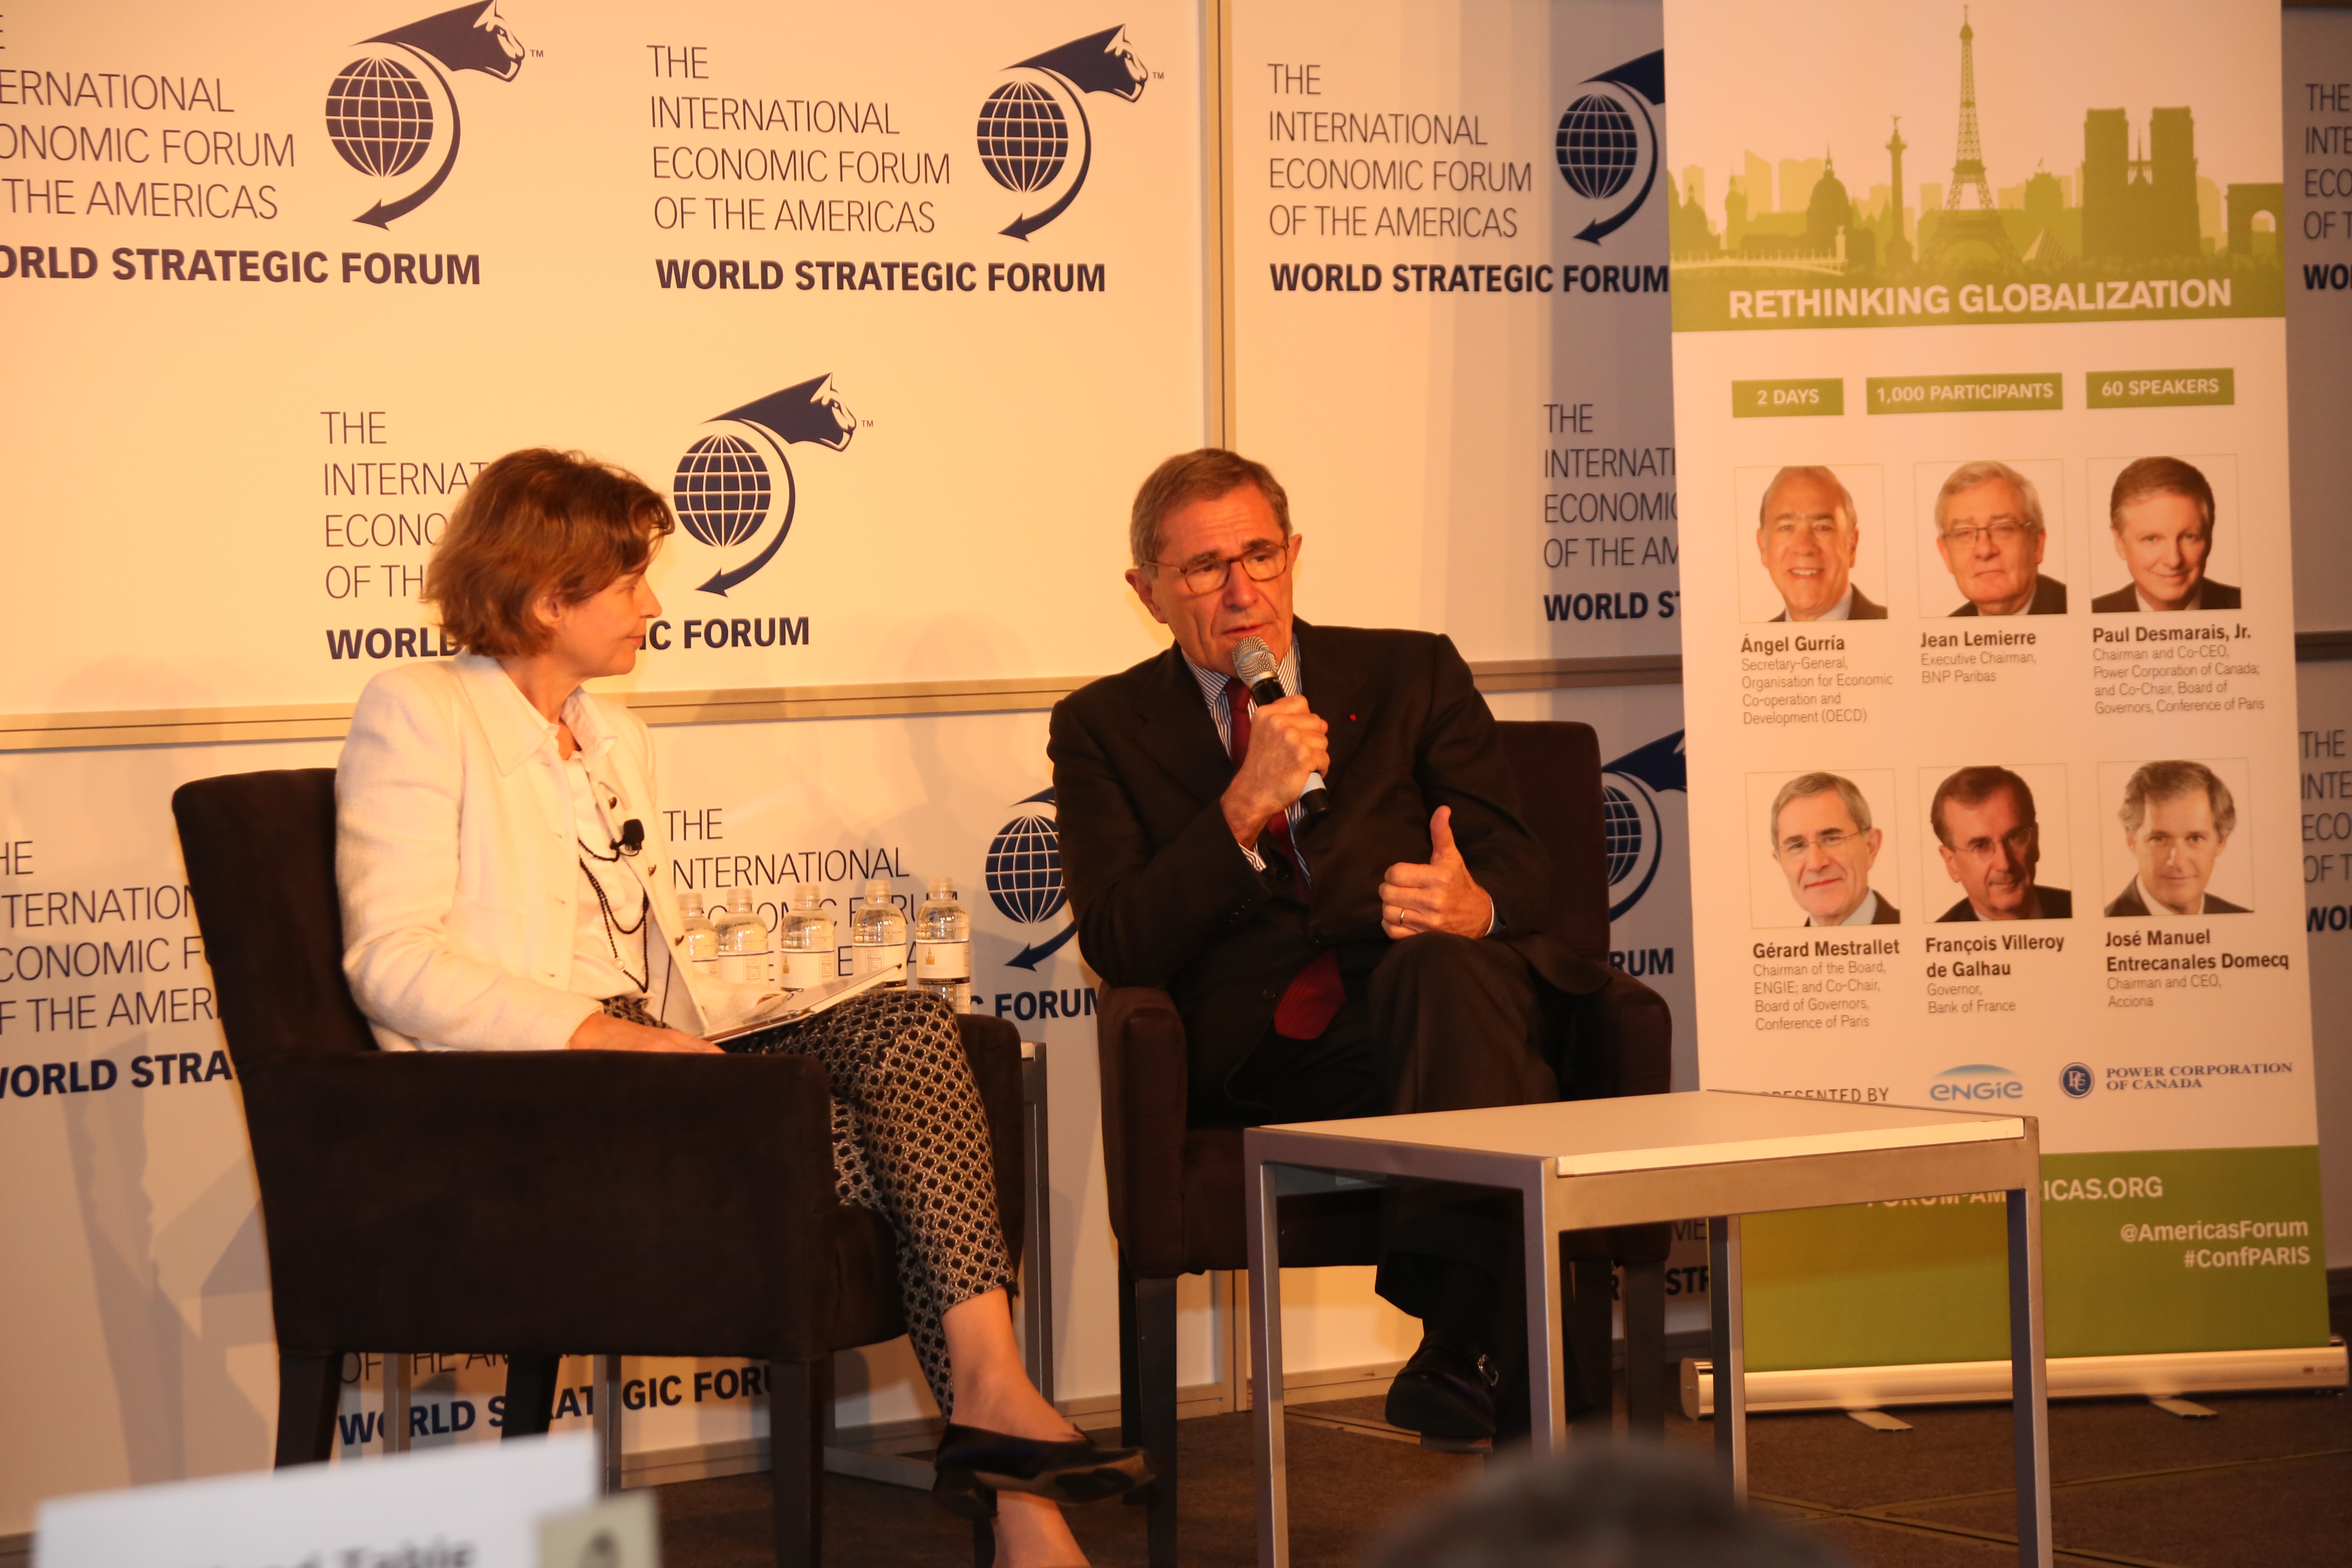 Gérard Mestrallet, Chairman, ENGIE interviewed by Sophie L'Hélias, President, LeaderXXchange; and Co-Founder, International Corporate Governance Network (ICGN)